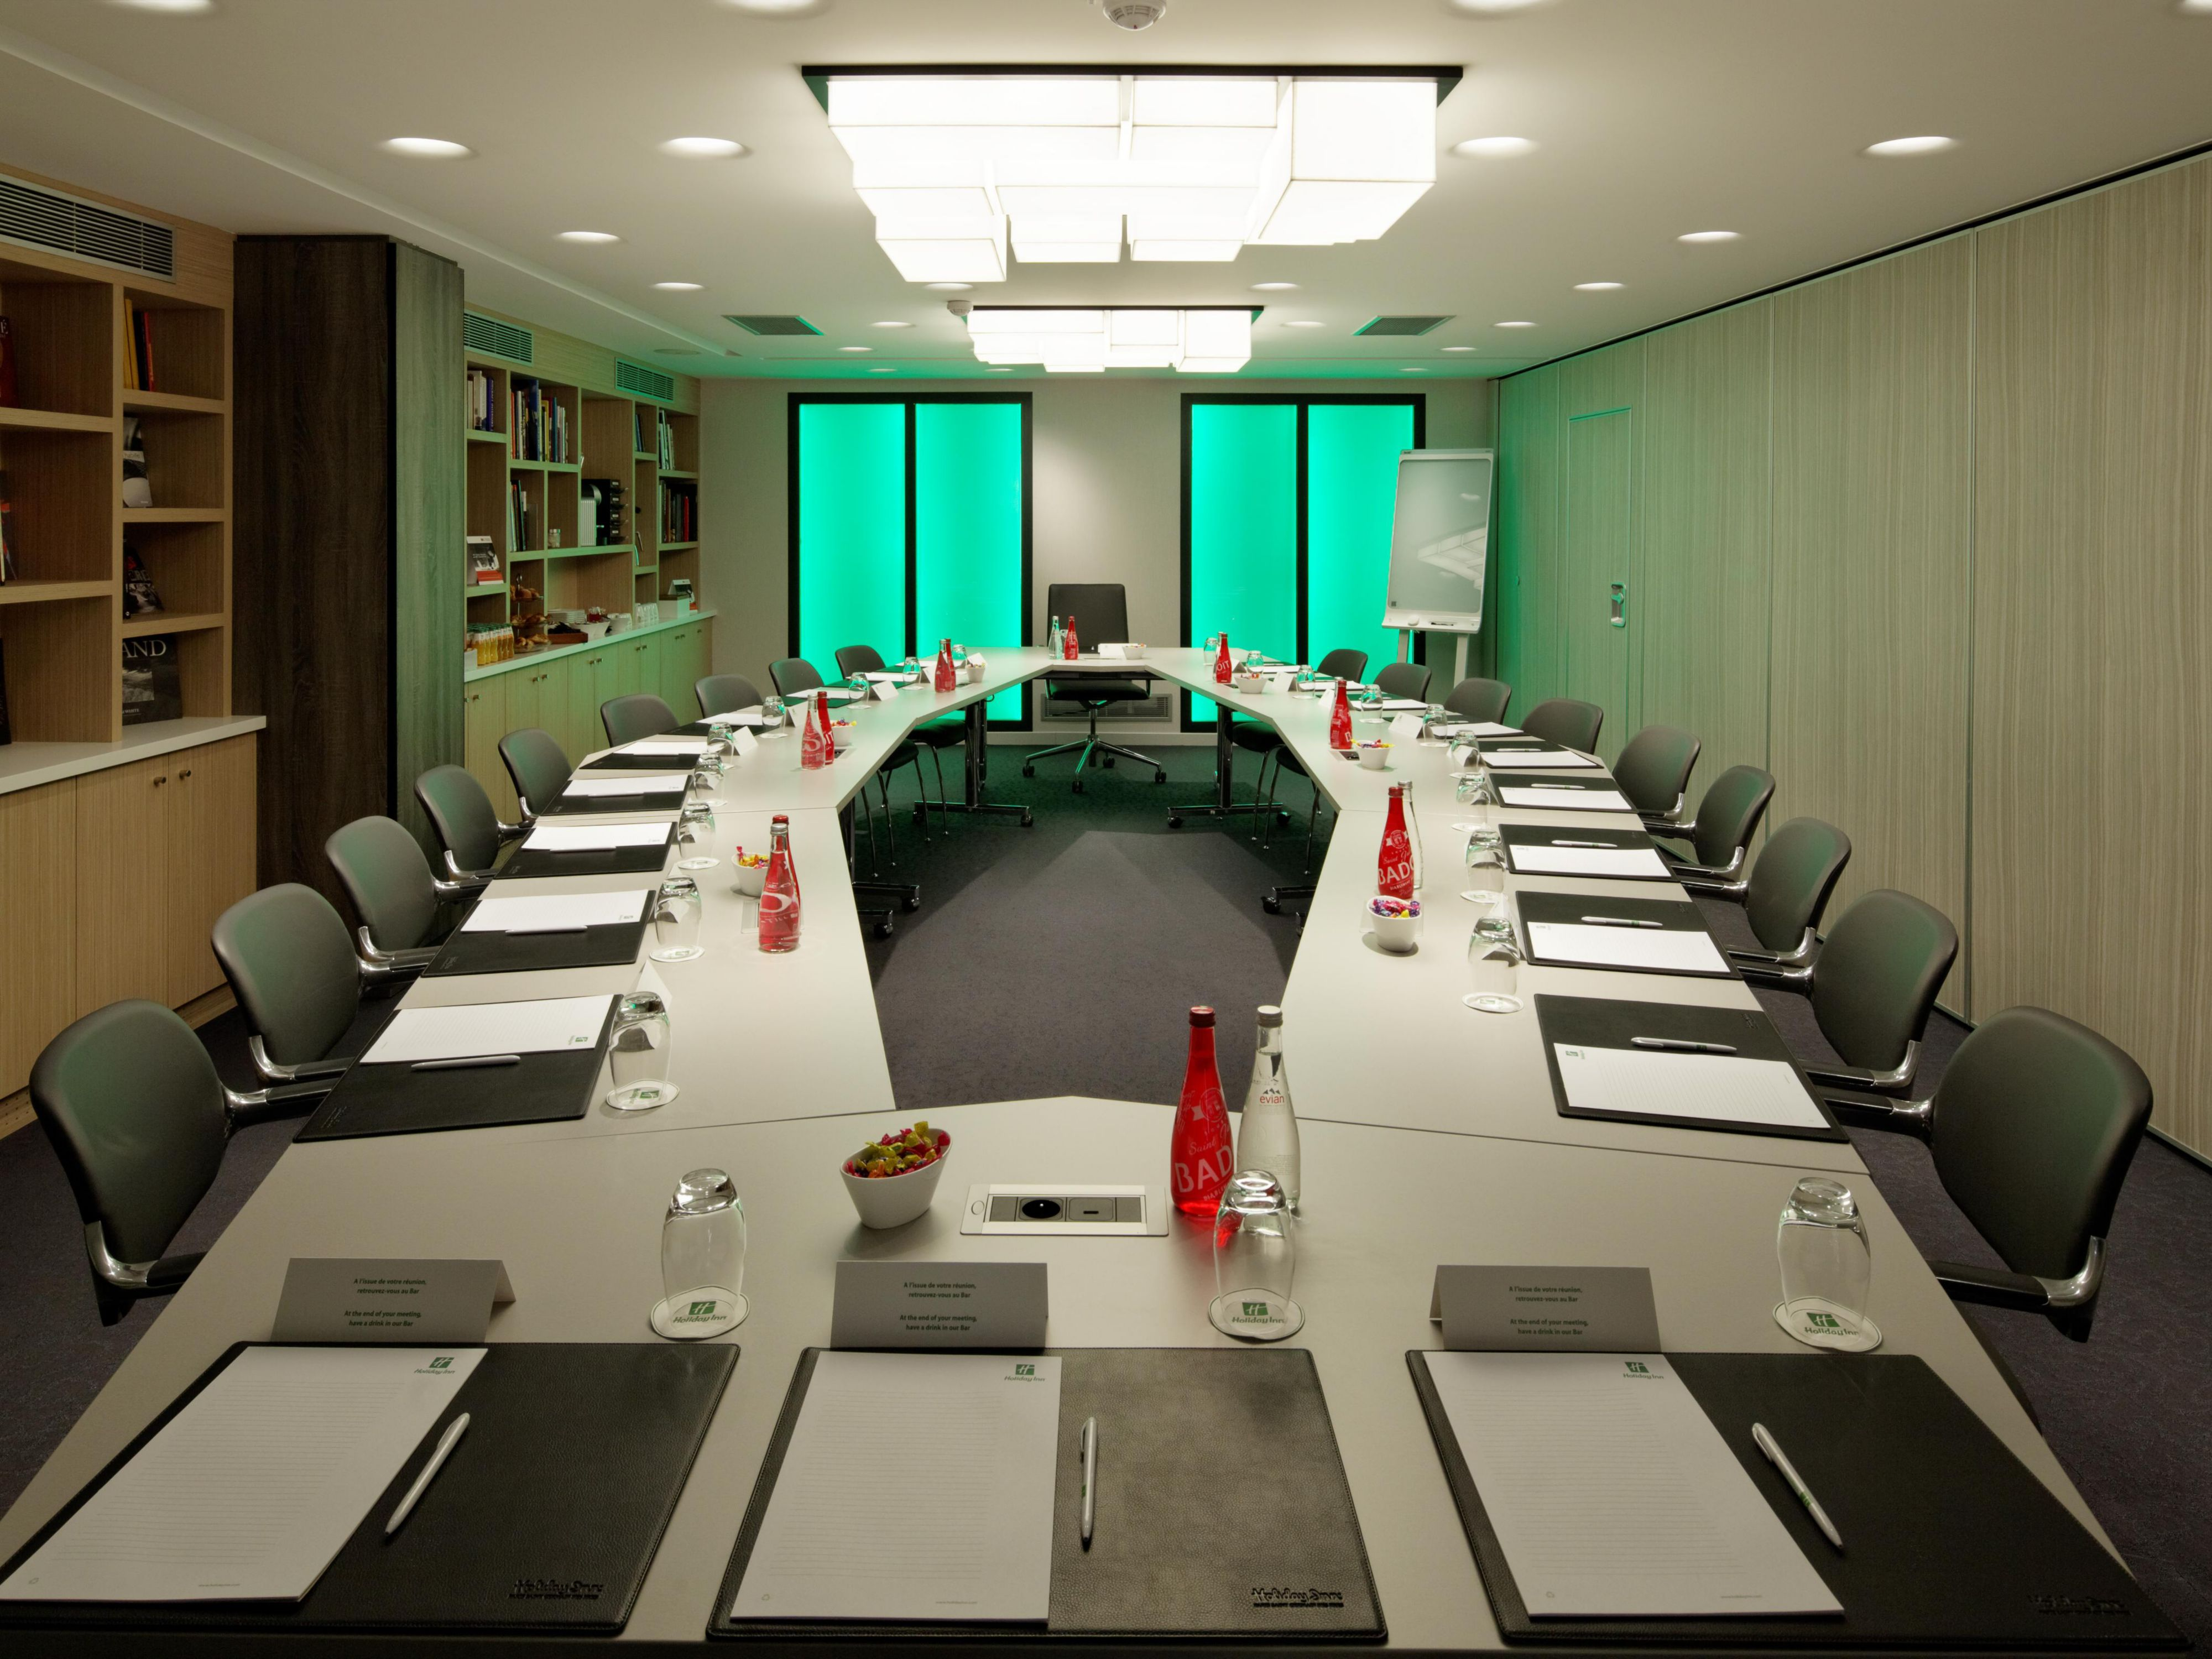 Meeting Room Descartes with Living Colors Lighting System